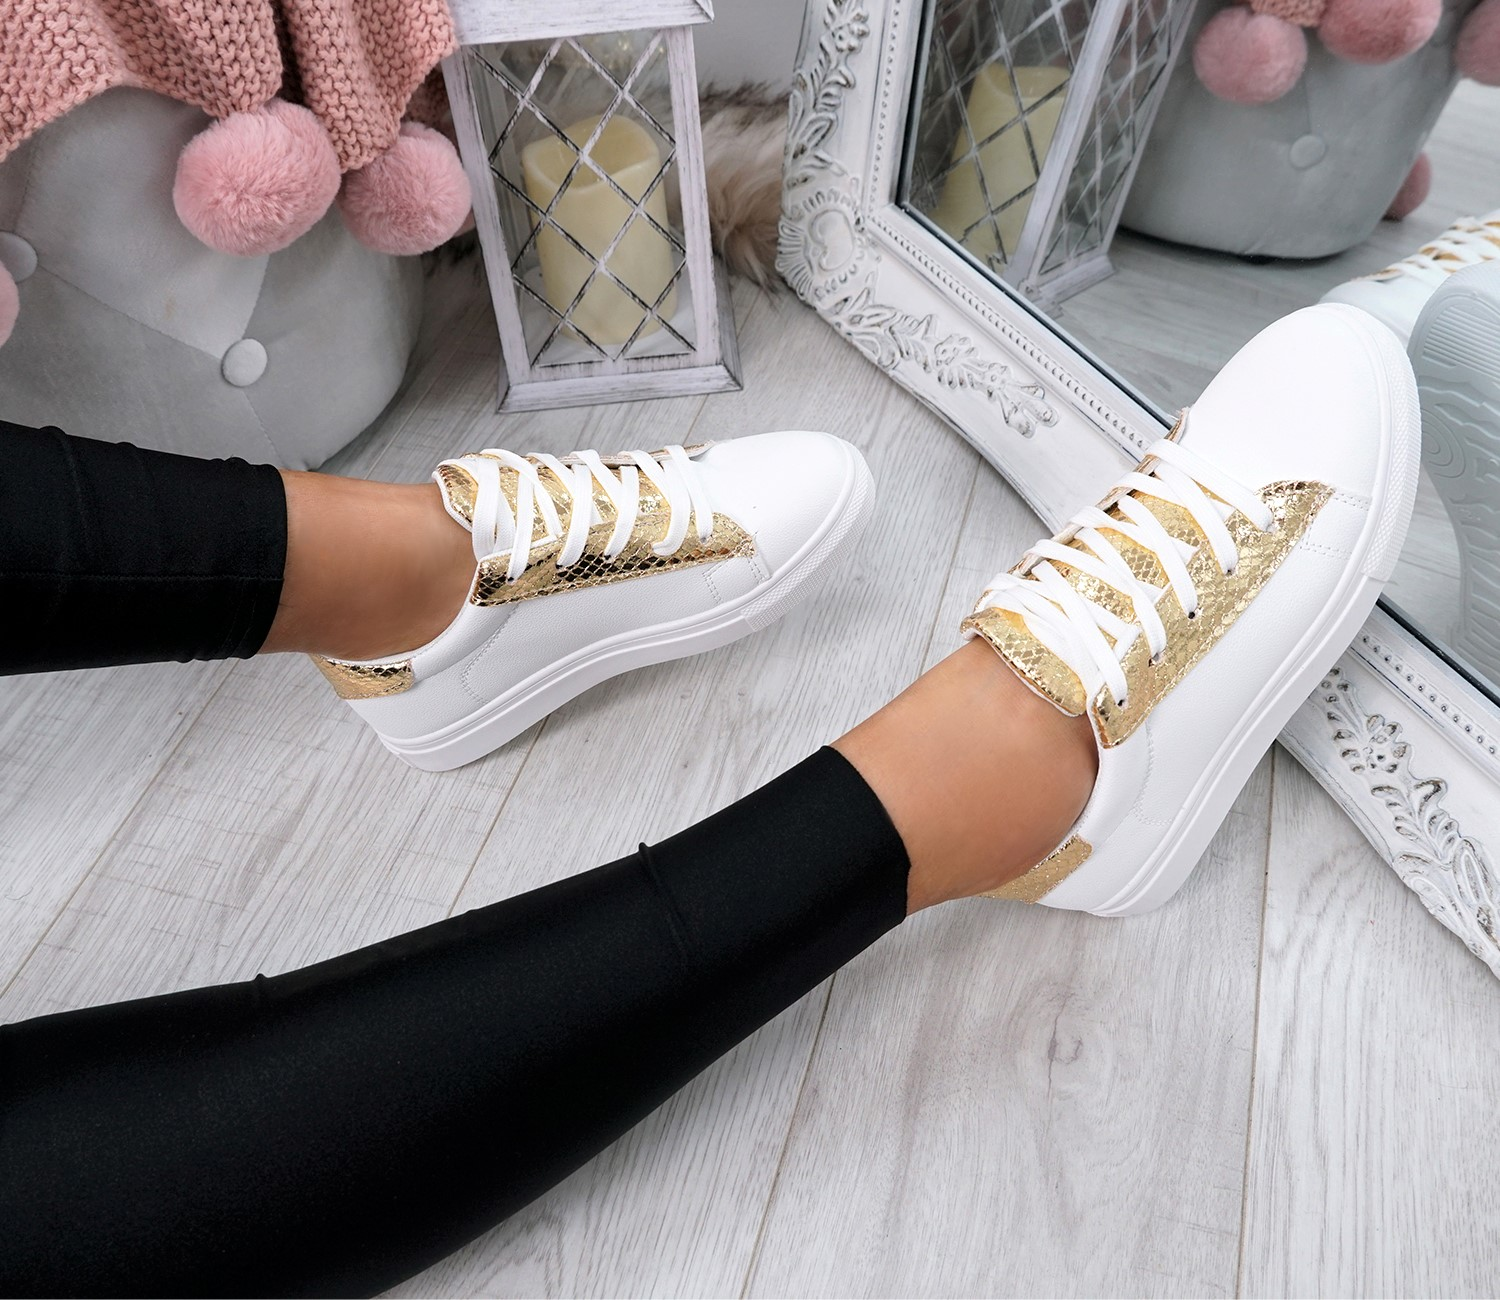 WOMENS-LADIES-SNAKE-SKIN-GLITTER-LACE-UP-TRAINERS-PLIMSOLLS-SNEAKERS-SHOES thumbnail 13